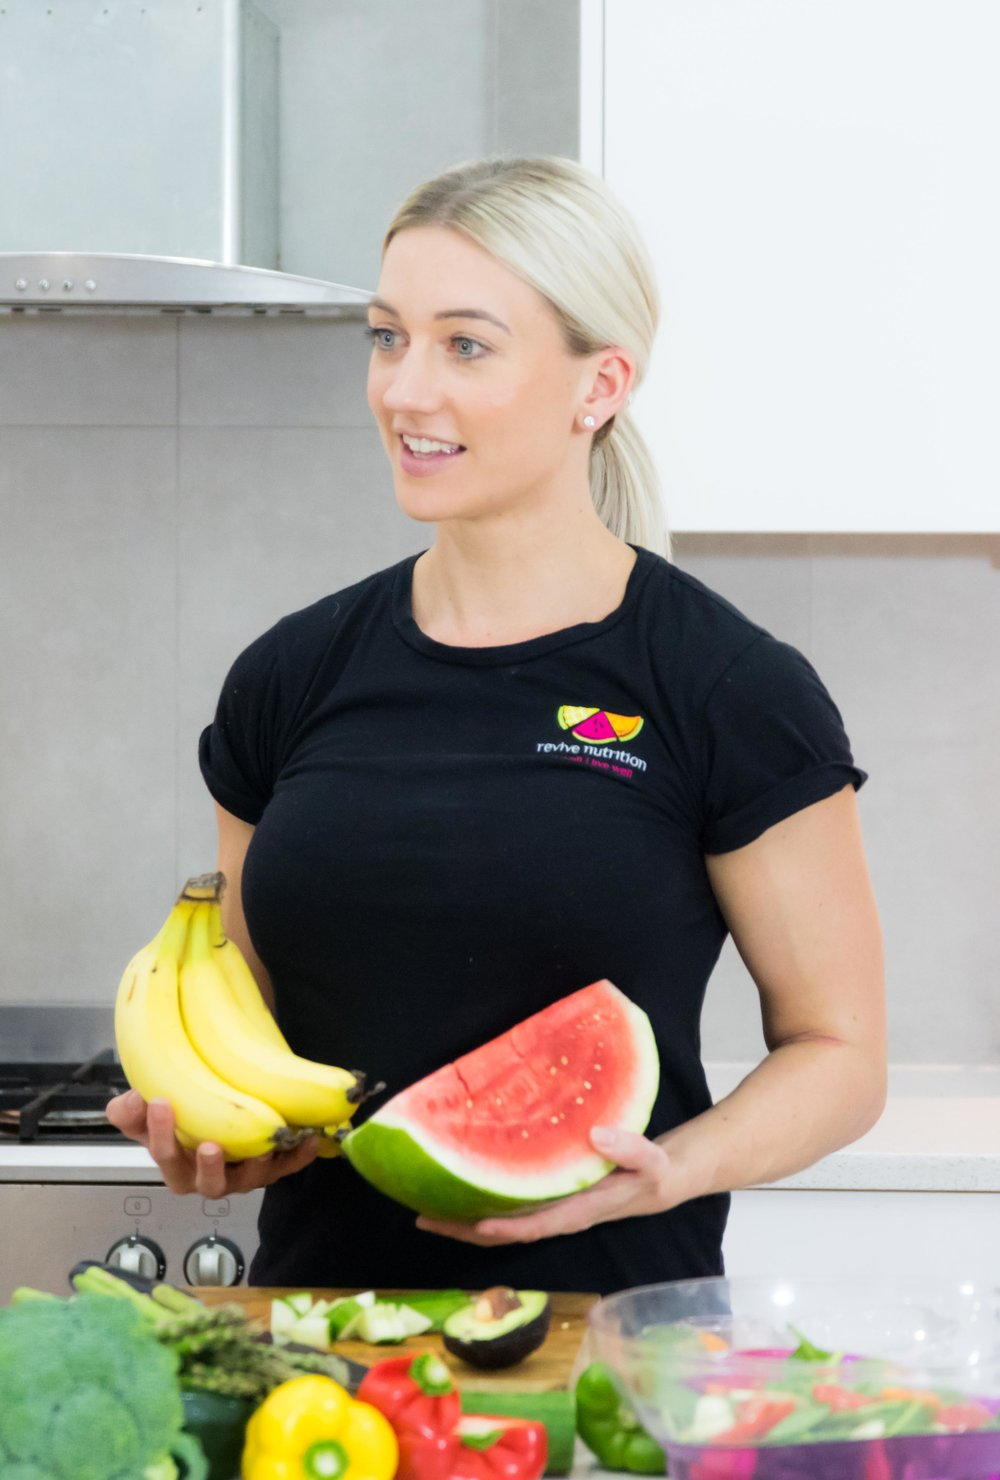 Kirsty Seward Revive Nutrition